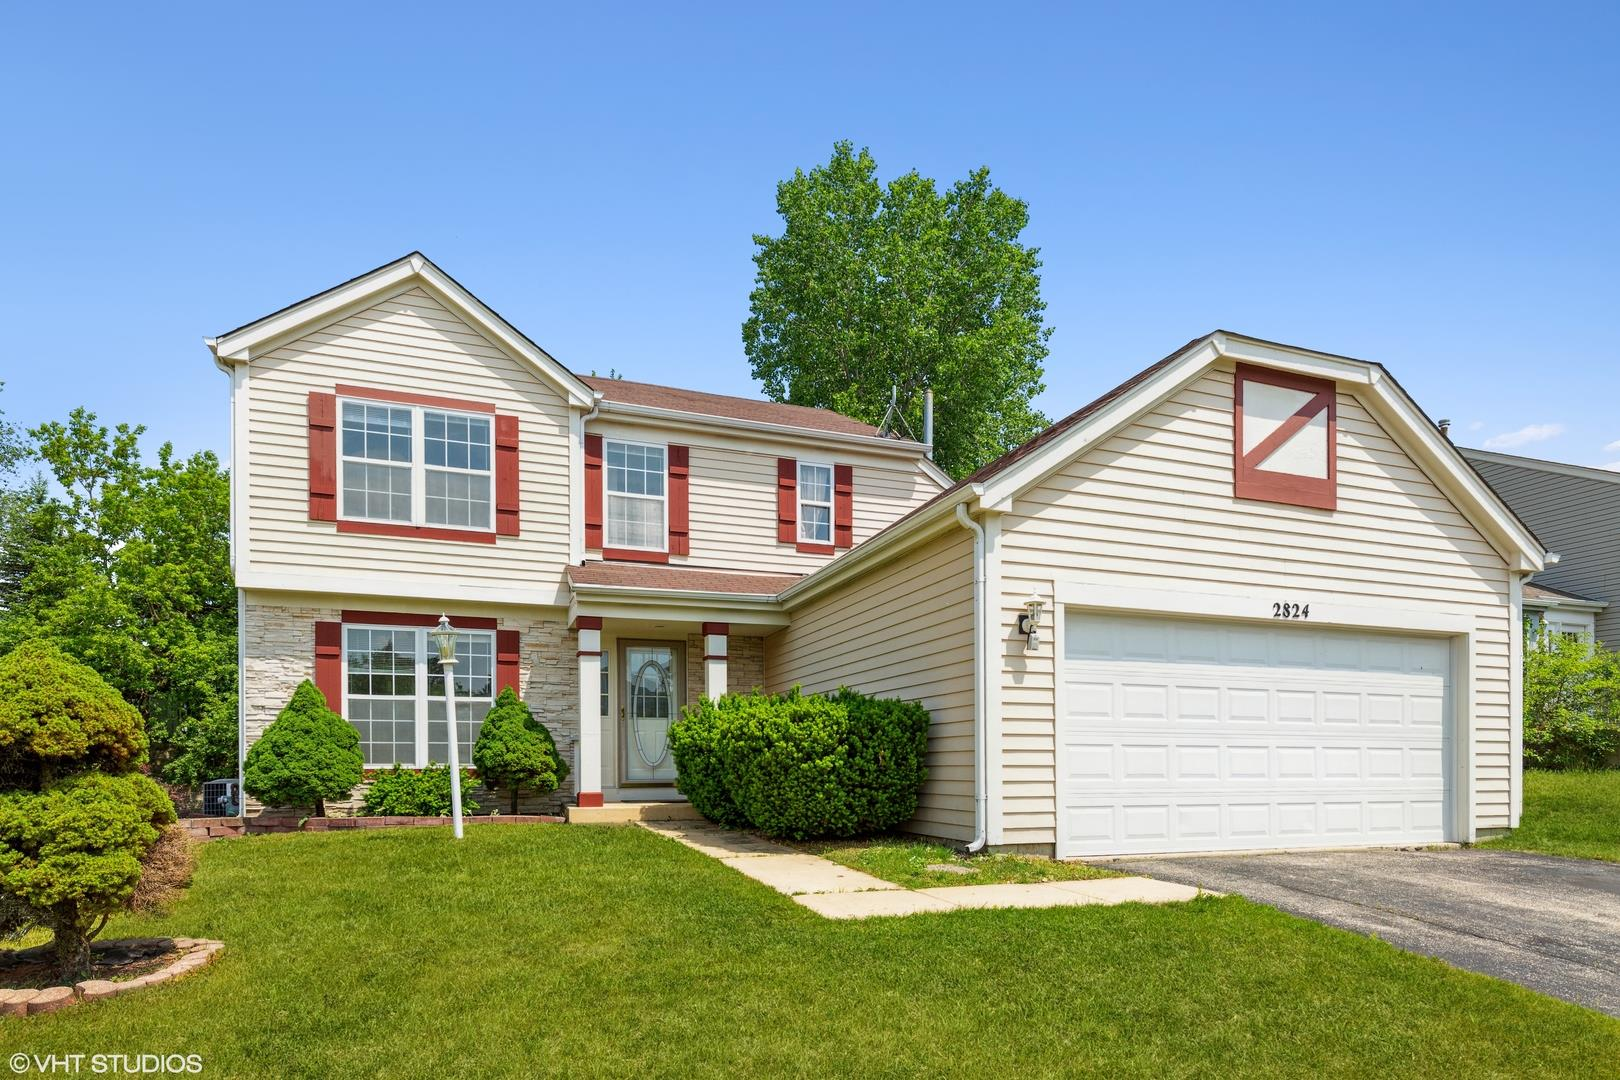 2824 Forestview Drive, Carpentersville, IL 60110 - #: 11016369